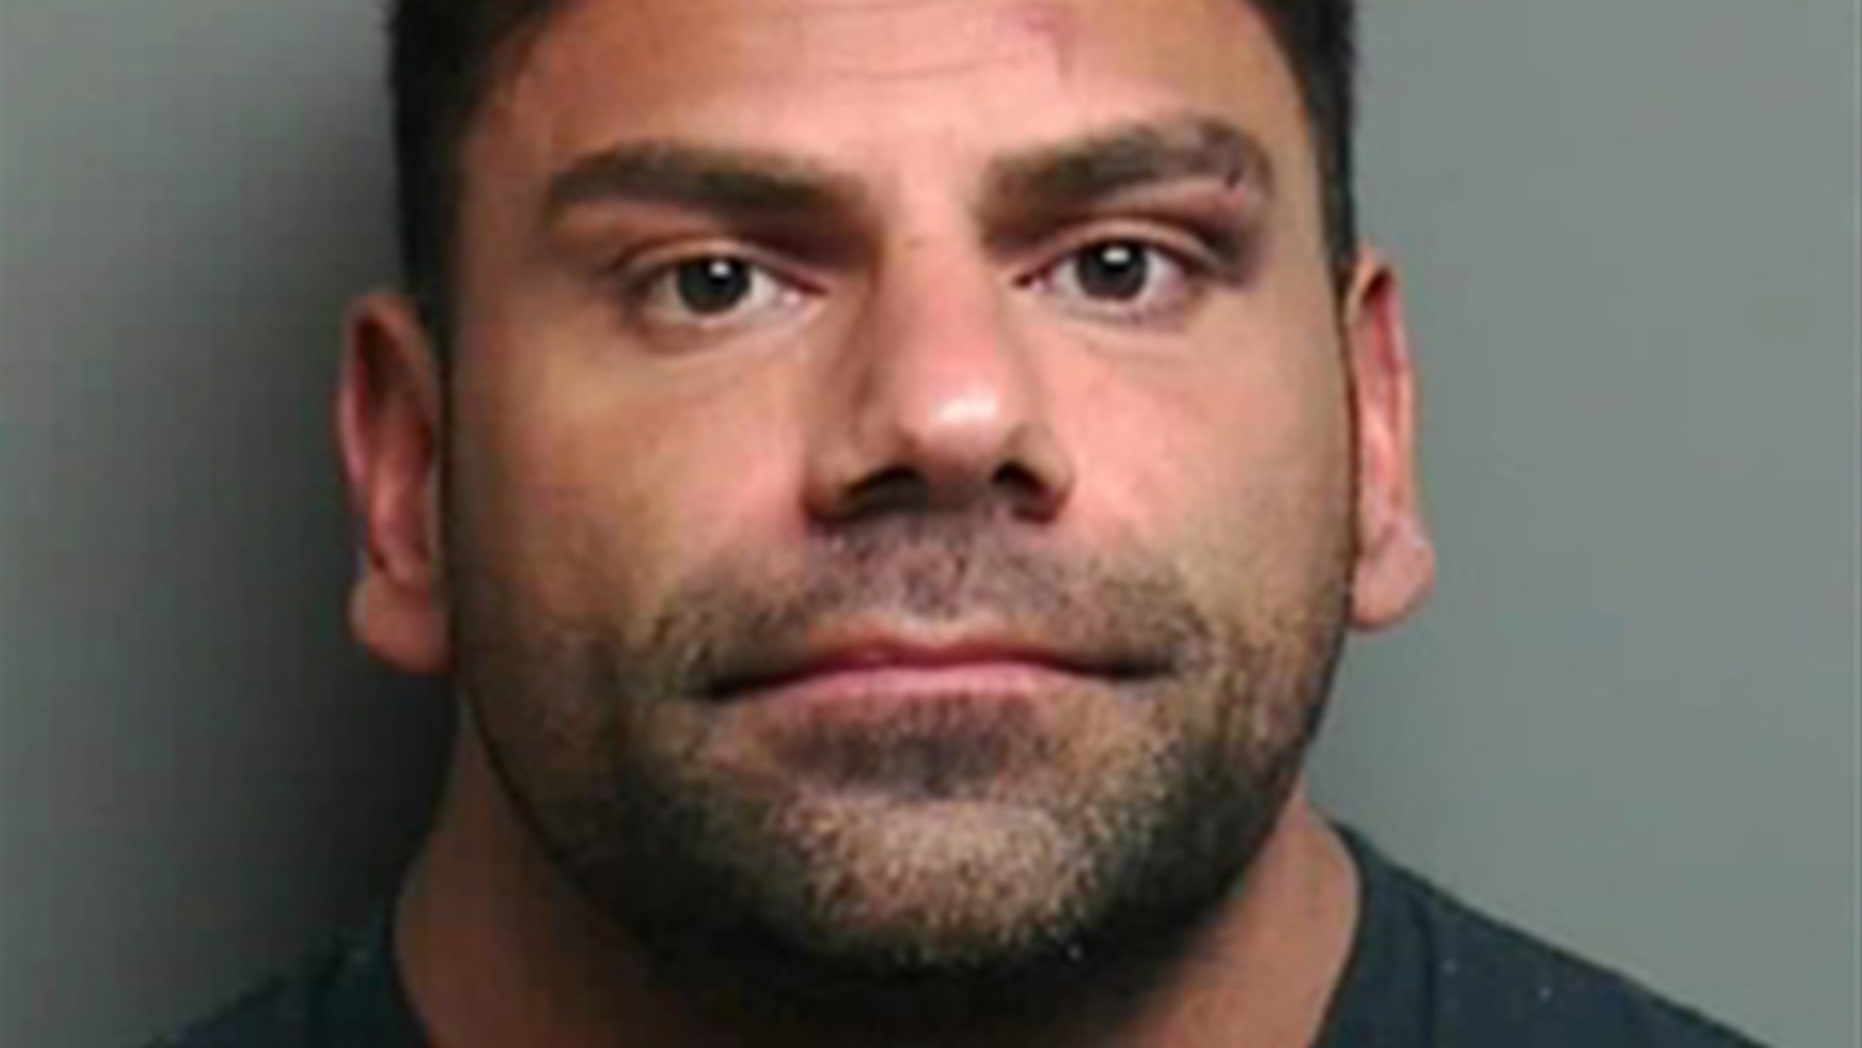 Paul Bashi is accused of attacking his girlfriend inside his rental home in Washington Township in July. If convicted of attempted murder, he could face life in prison, media reports say.